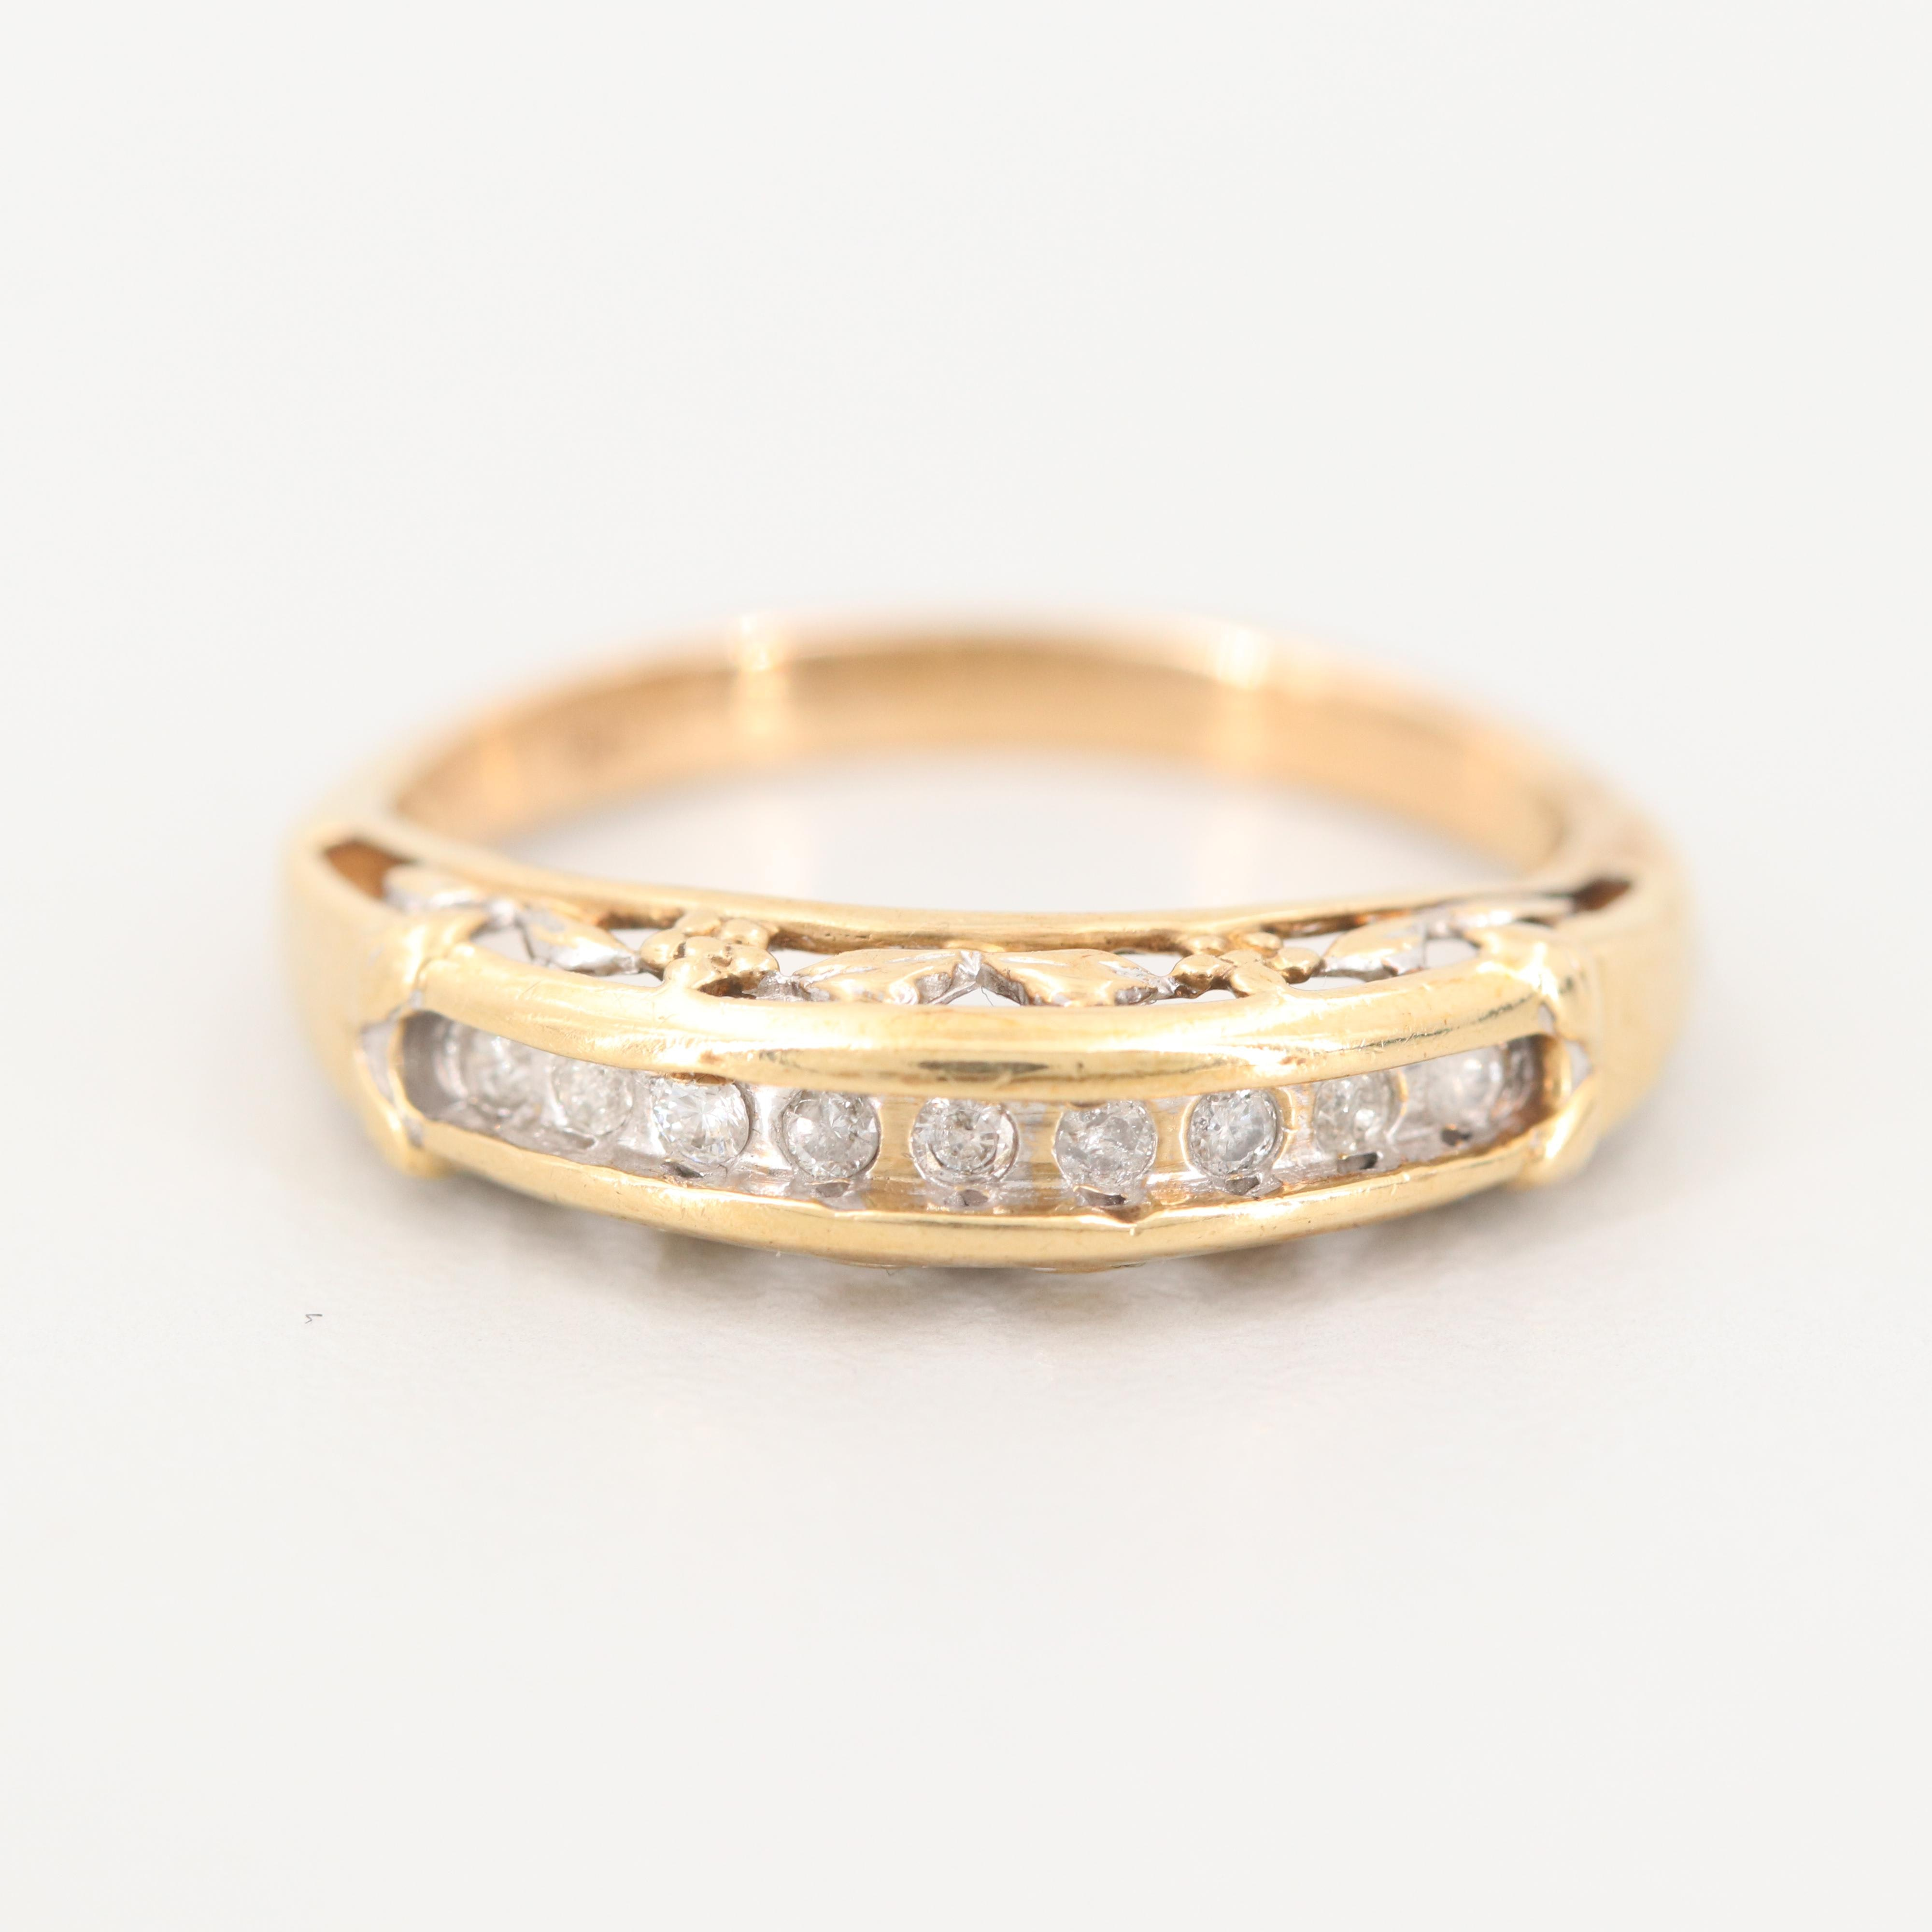 10K and 14K Yellow Gold Diamond Ring